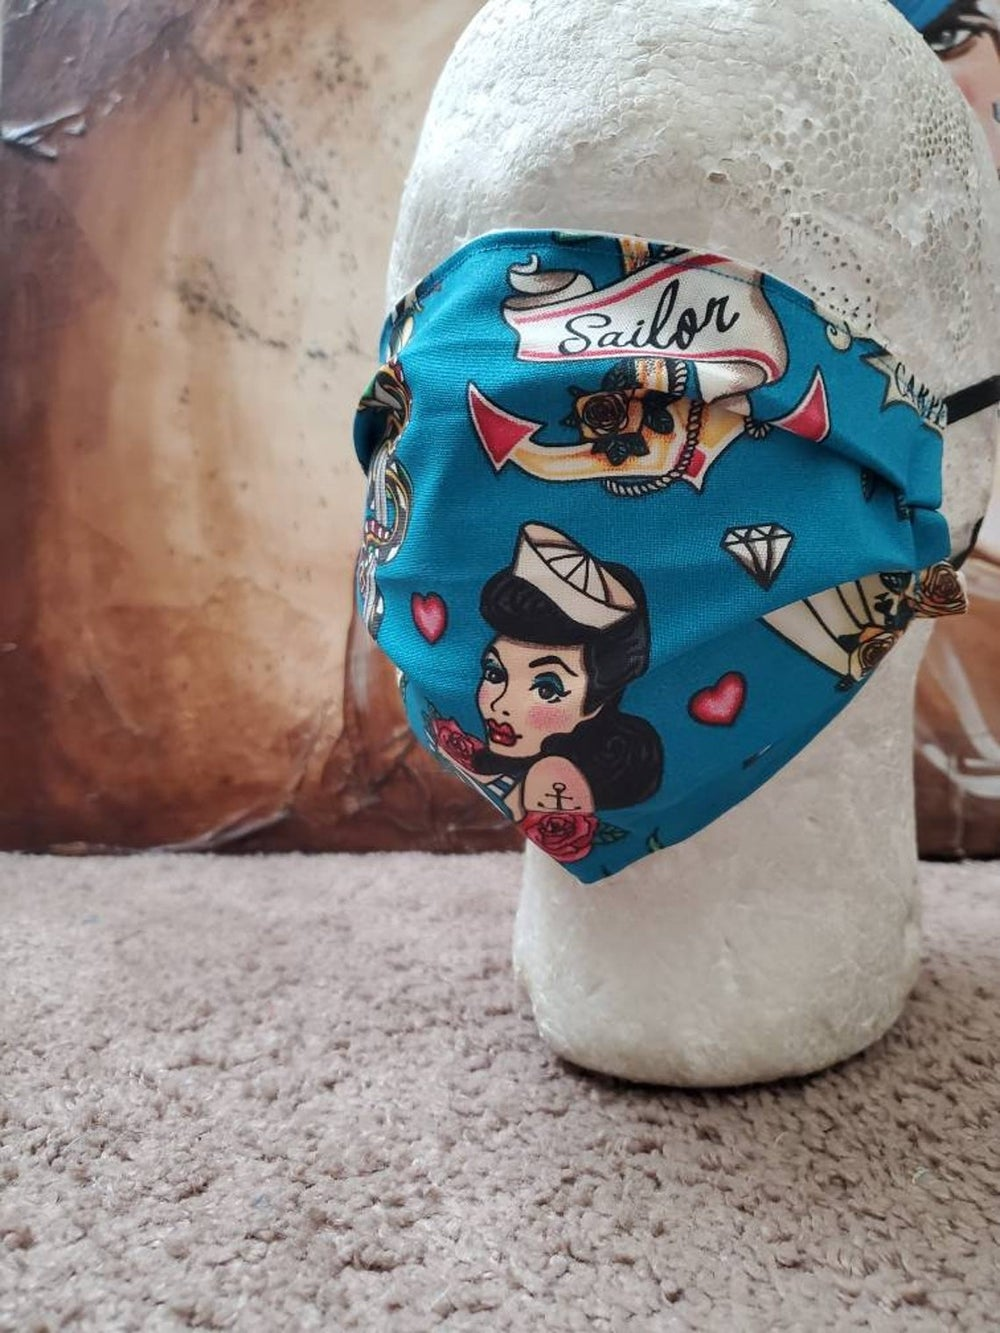 Pin Up Sailor Jerry Themed Mask